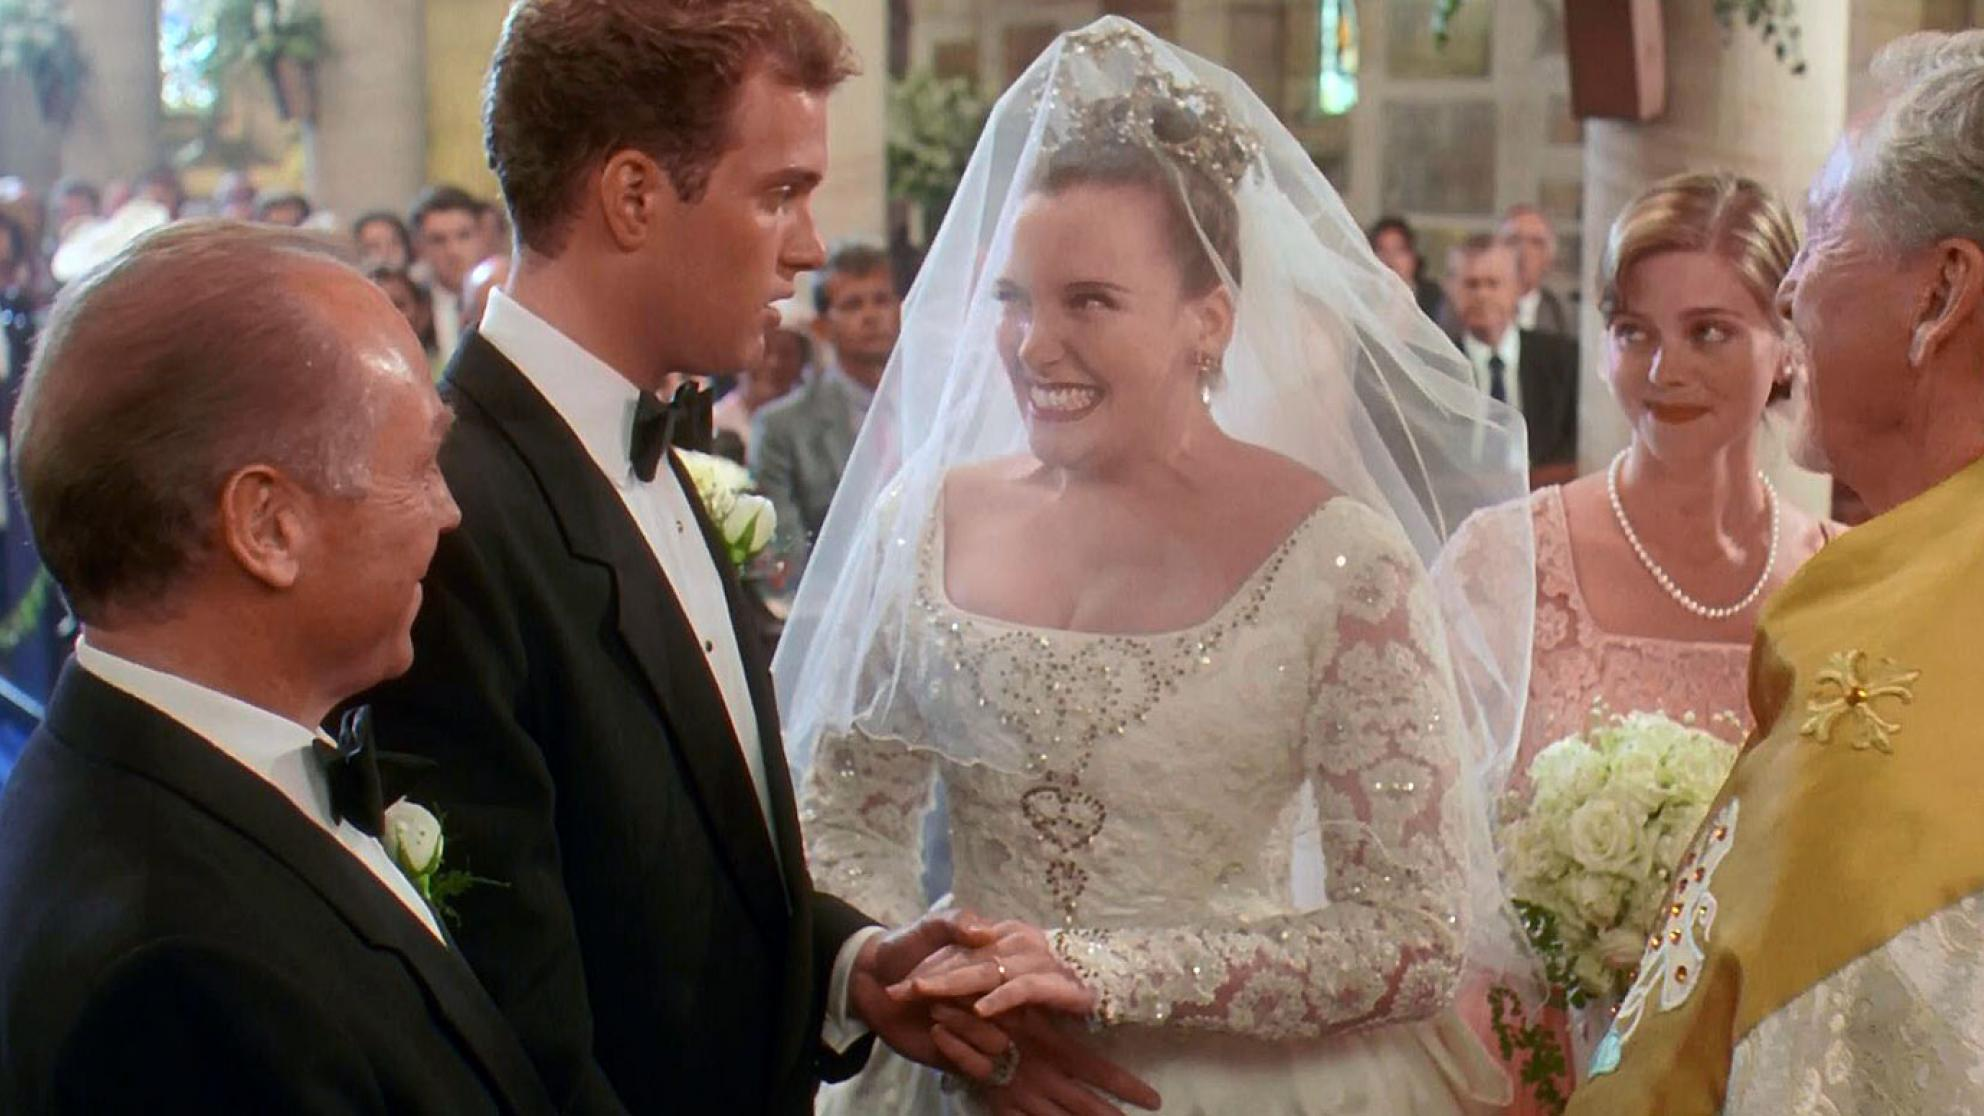 A scene from Muriel's Wedding where the main character, Muriel (Toni Collette) is getting married. She's standing at the alter with her groom, his best man, her bridesmaid and a minister.